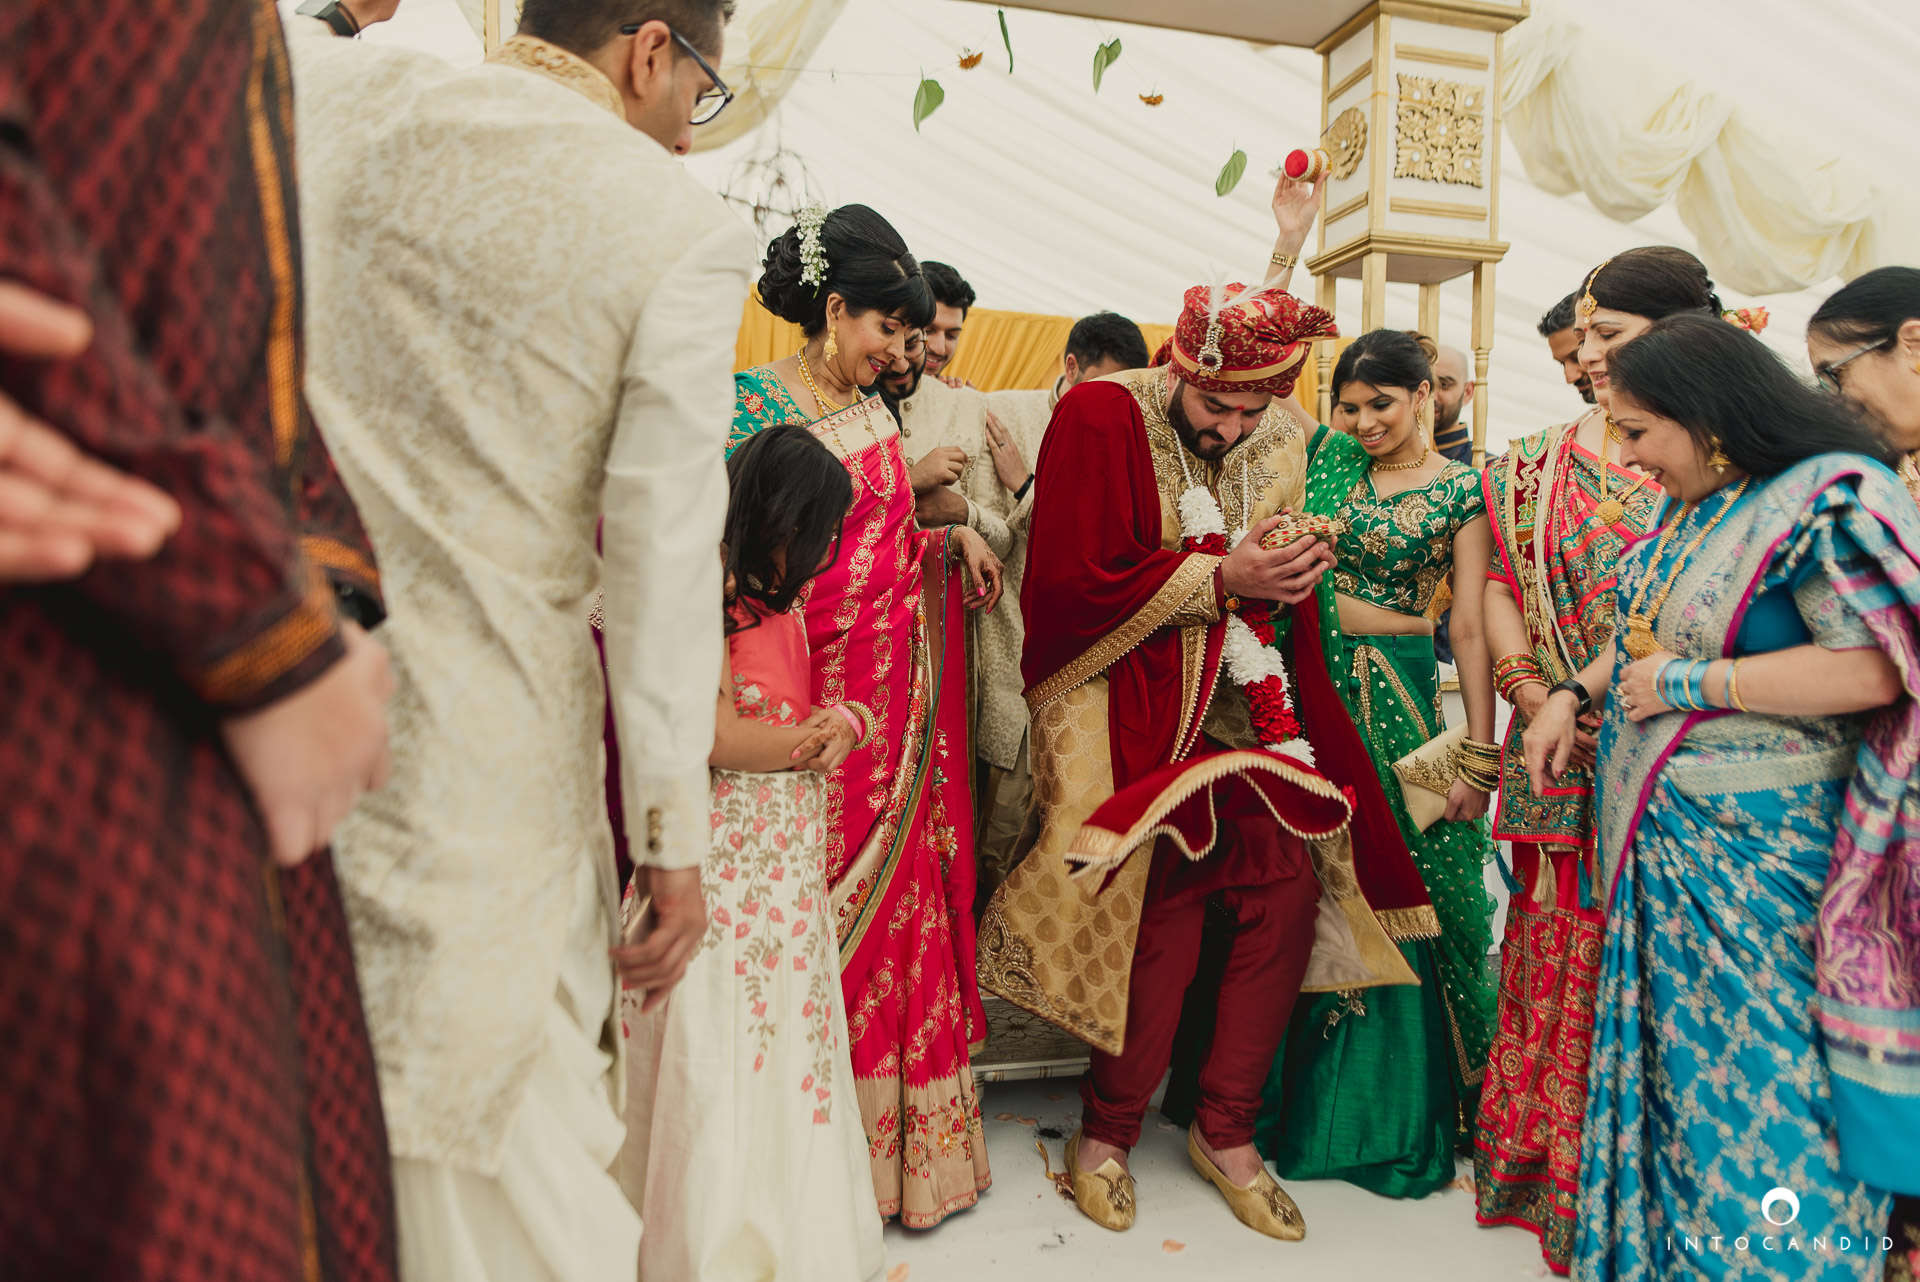 London_Wedding_Photographer_Intocandid_Photography_Ketan & Manasvi_35.JPG